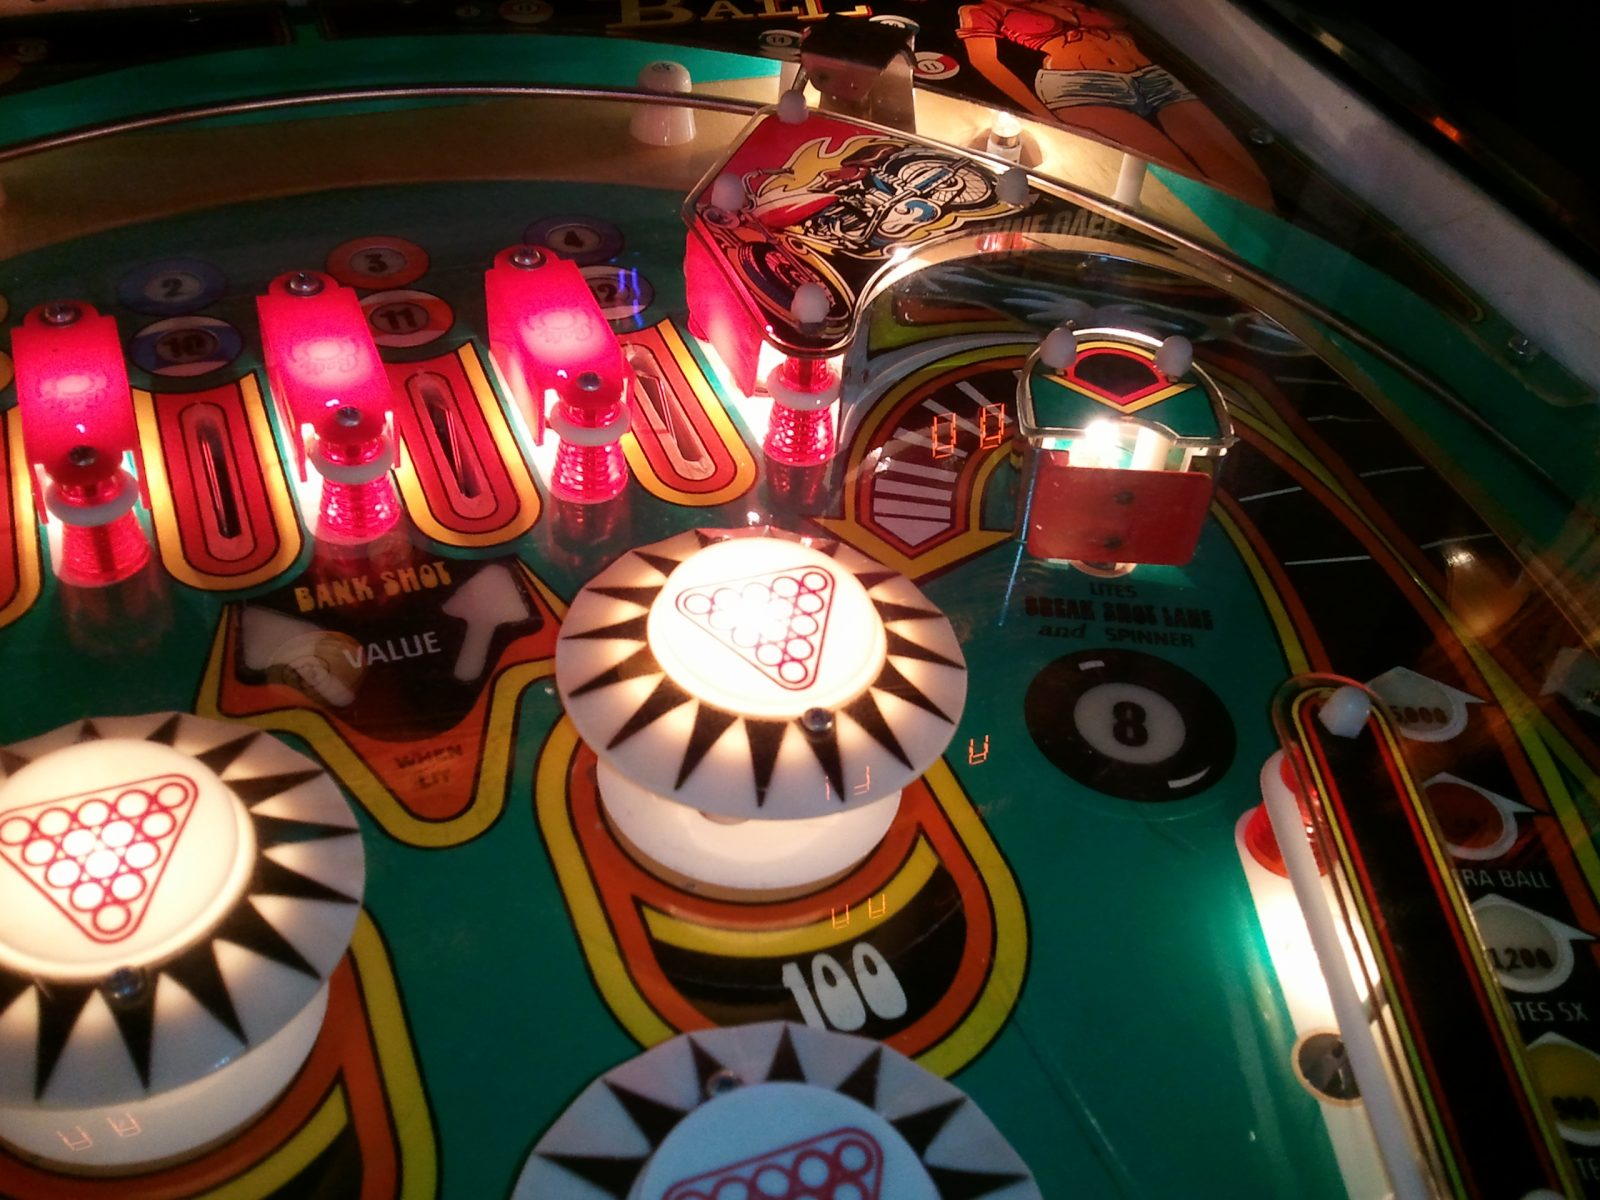 A pinball machine top from the collection of Pinball 4 All owner Larry Cuthie